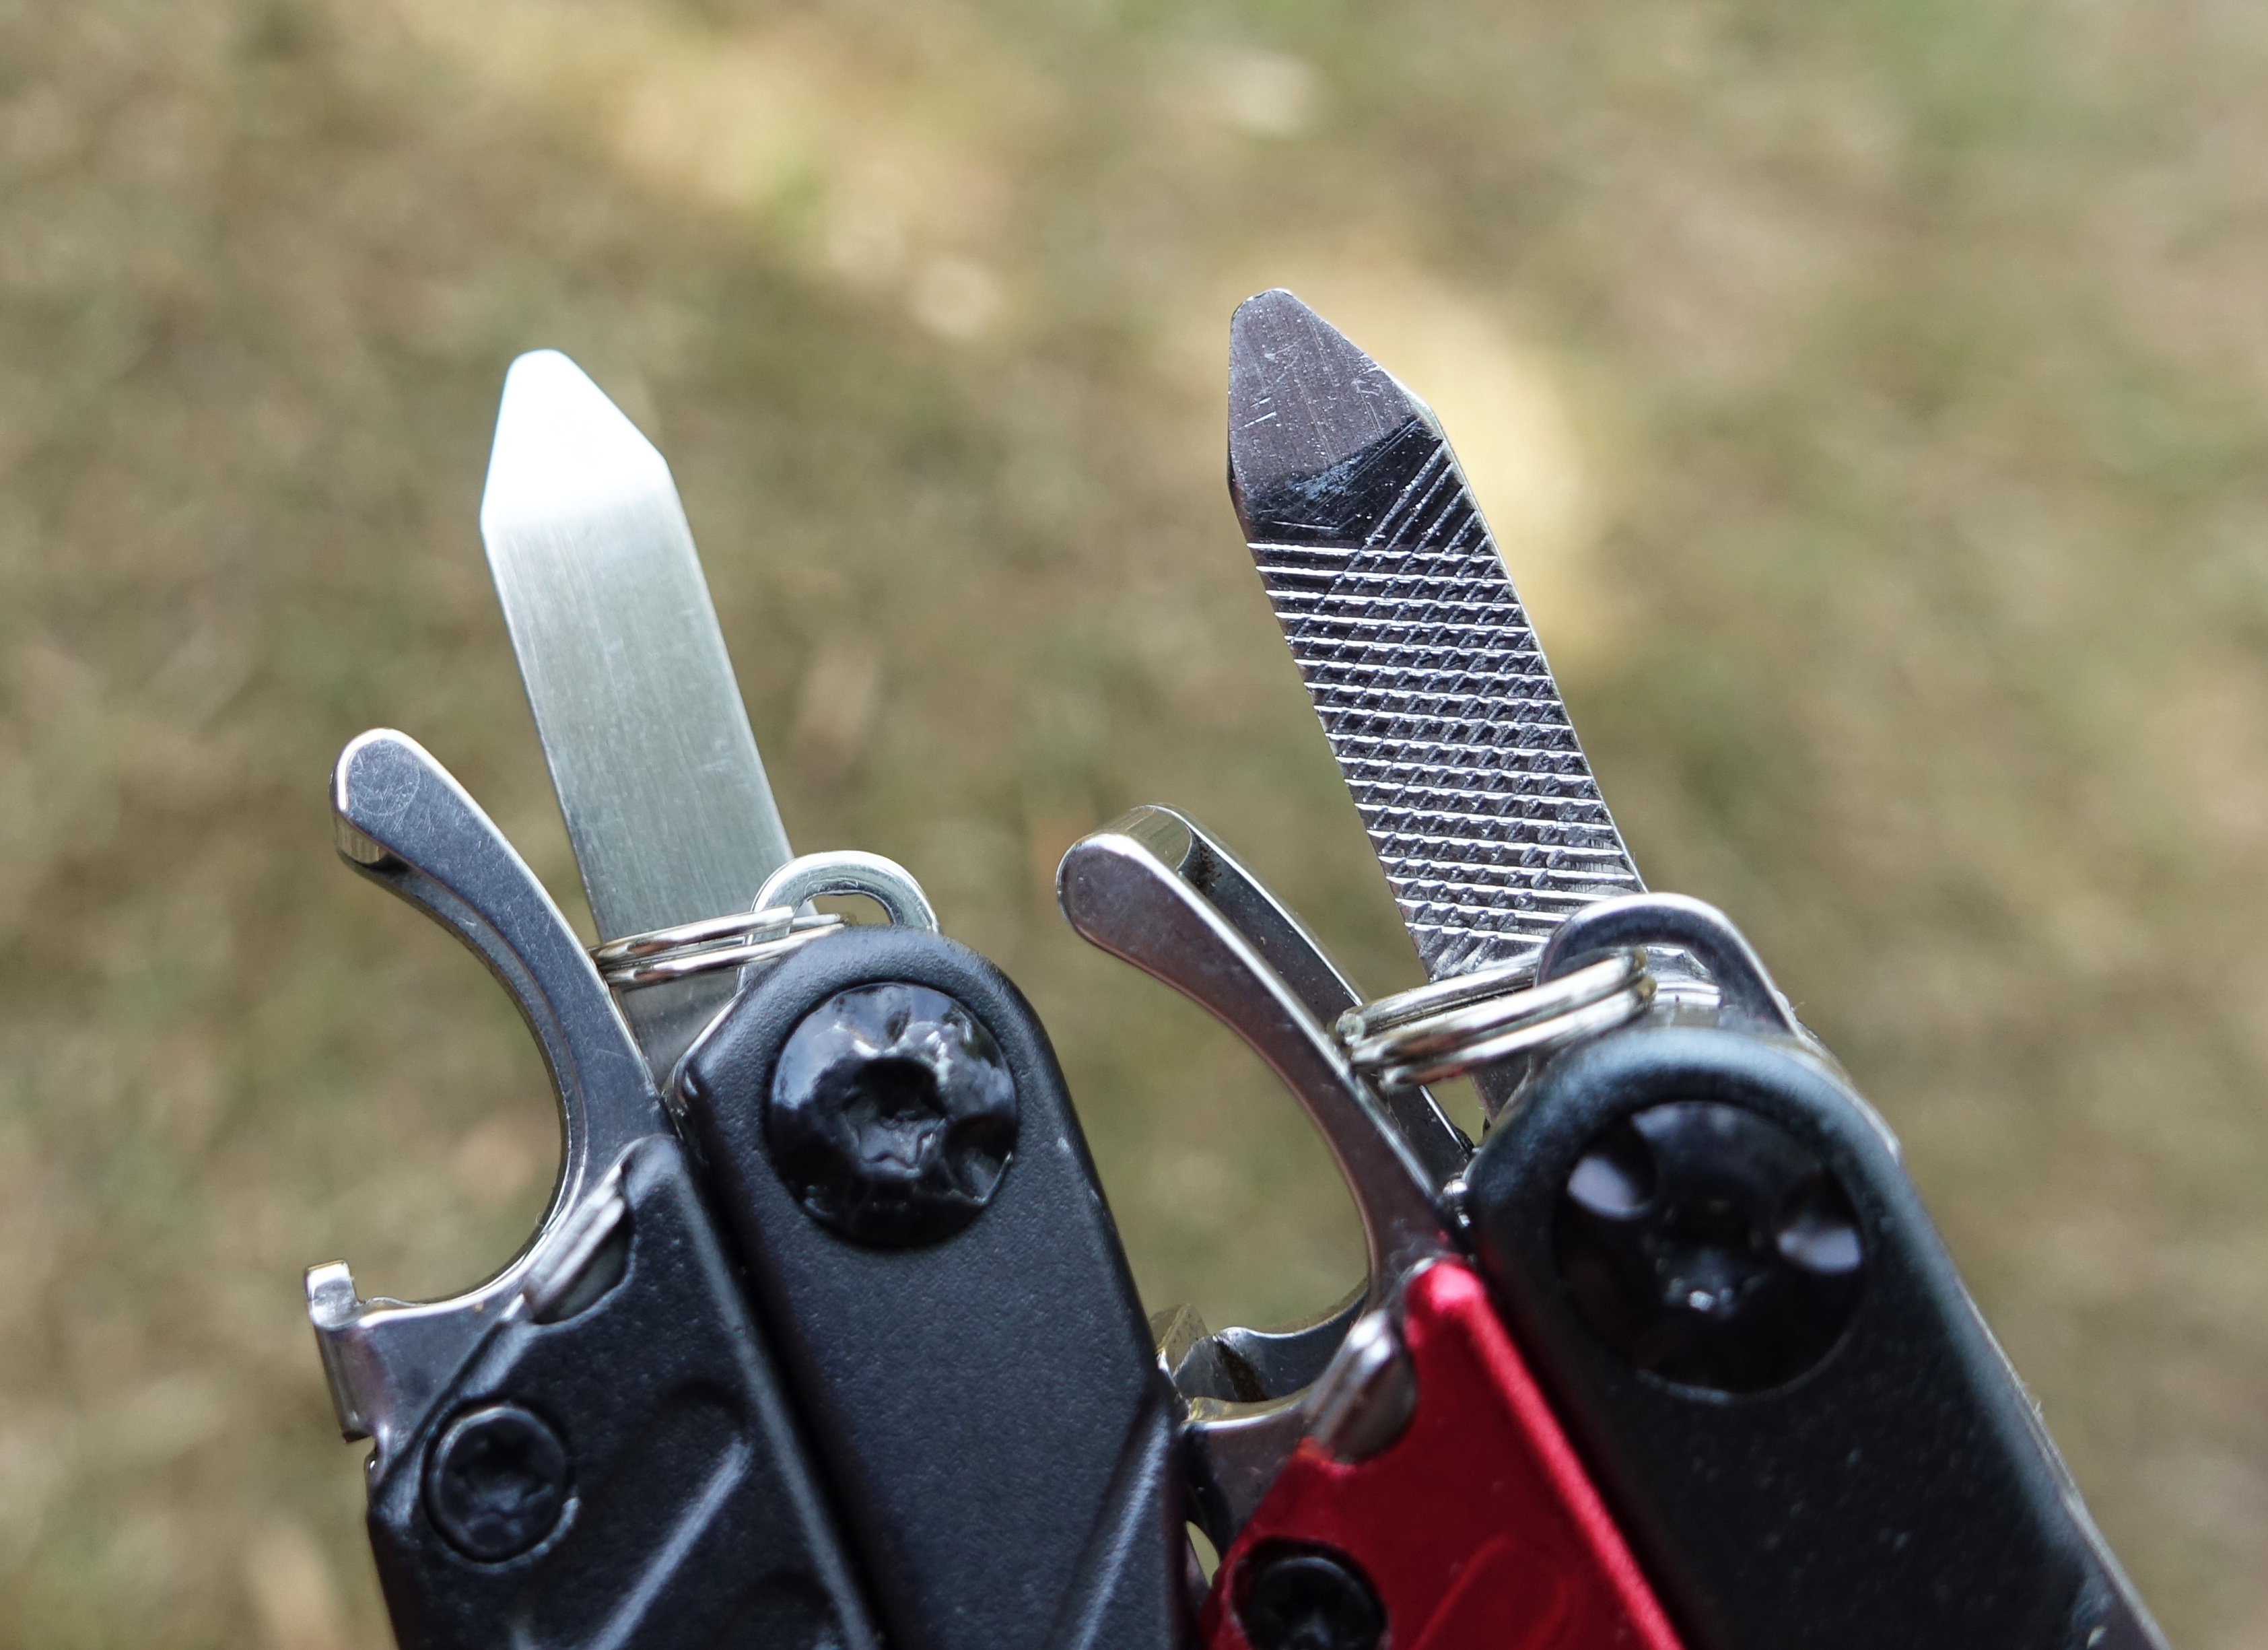 Comparing the smal Phillips head drivers on Dime Travel (left) and Dime (right)